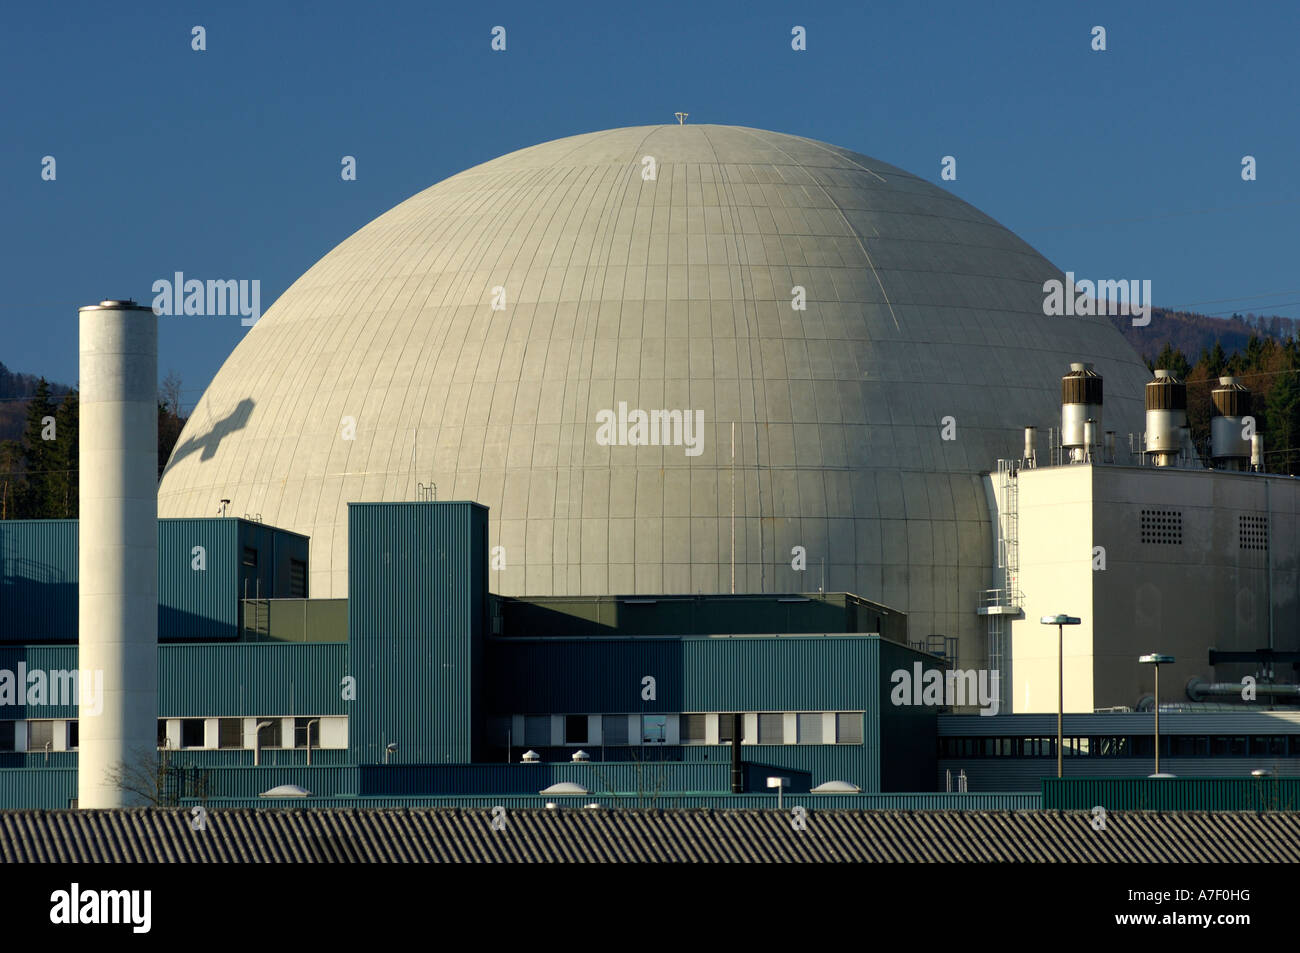 Reactor dome, Nuclear power plant Goesgen, Switzerland - Stock Image